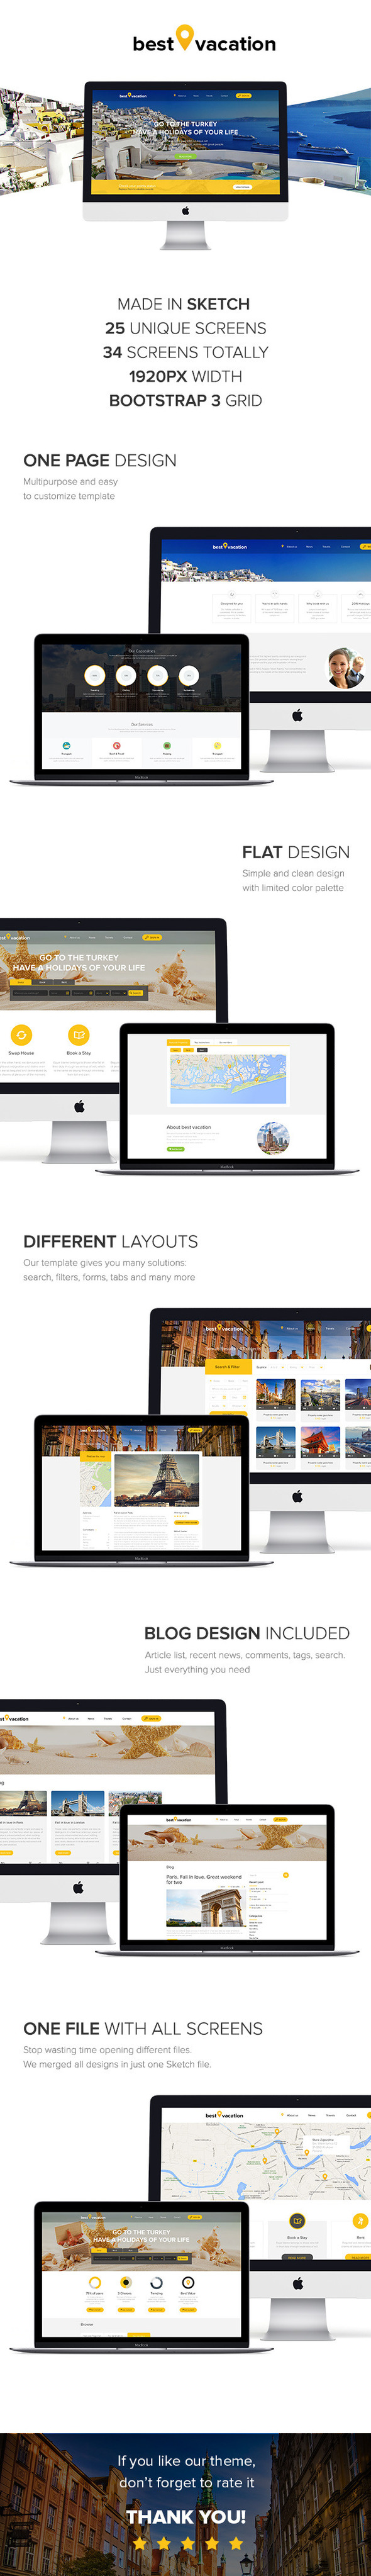 Best Vacation - Holiday Web Sketch Template - Sketch Templates